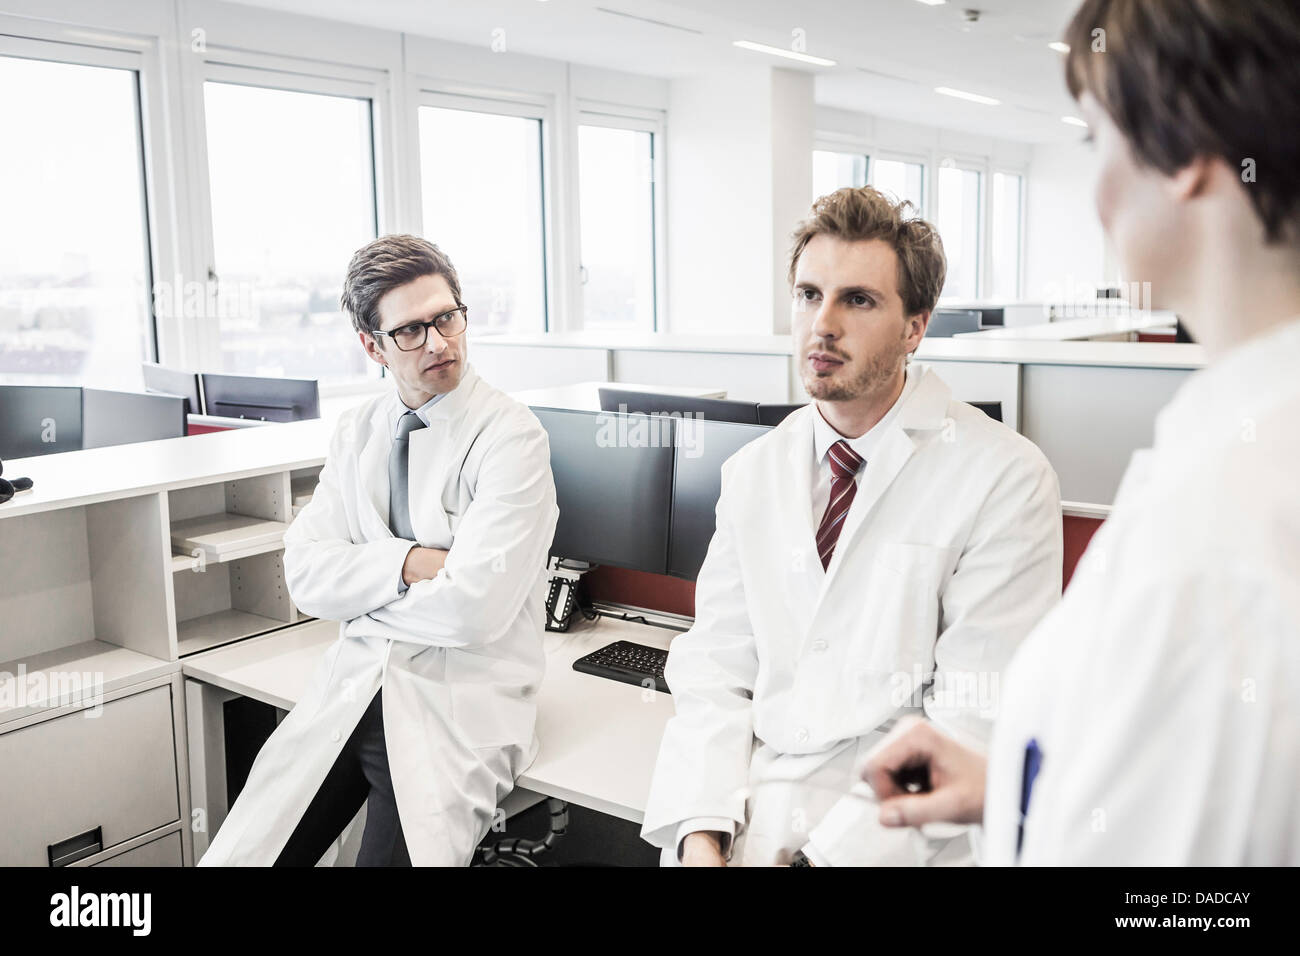 Two men wearing lab coats sitting on desk, woman standing - Stock Image